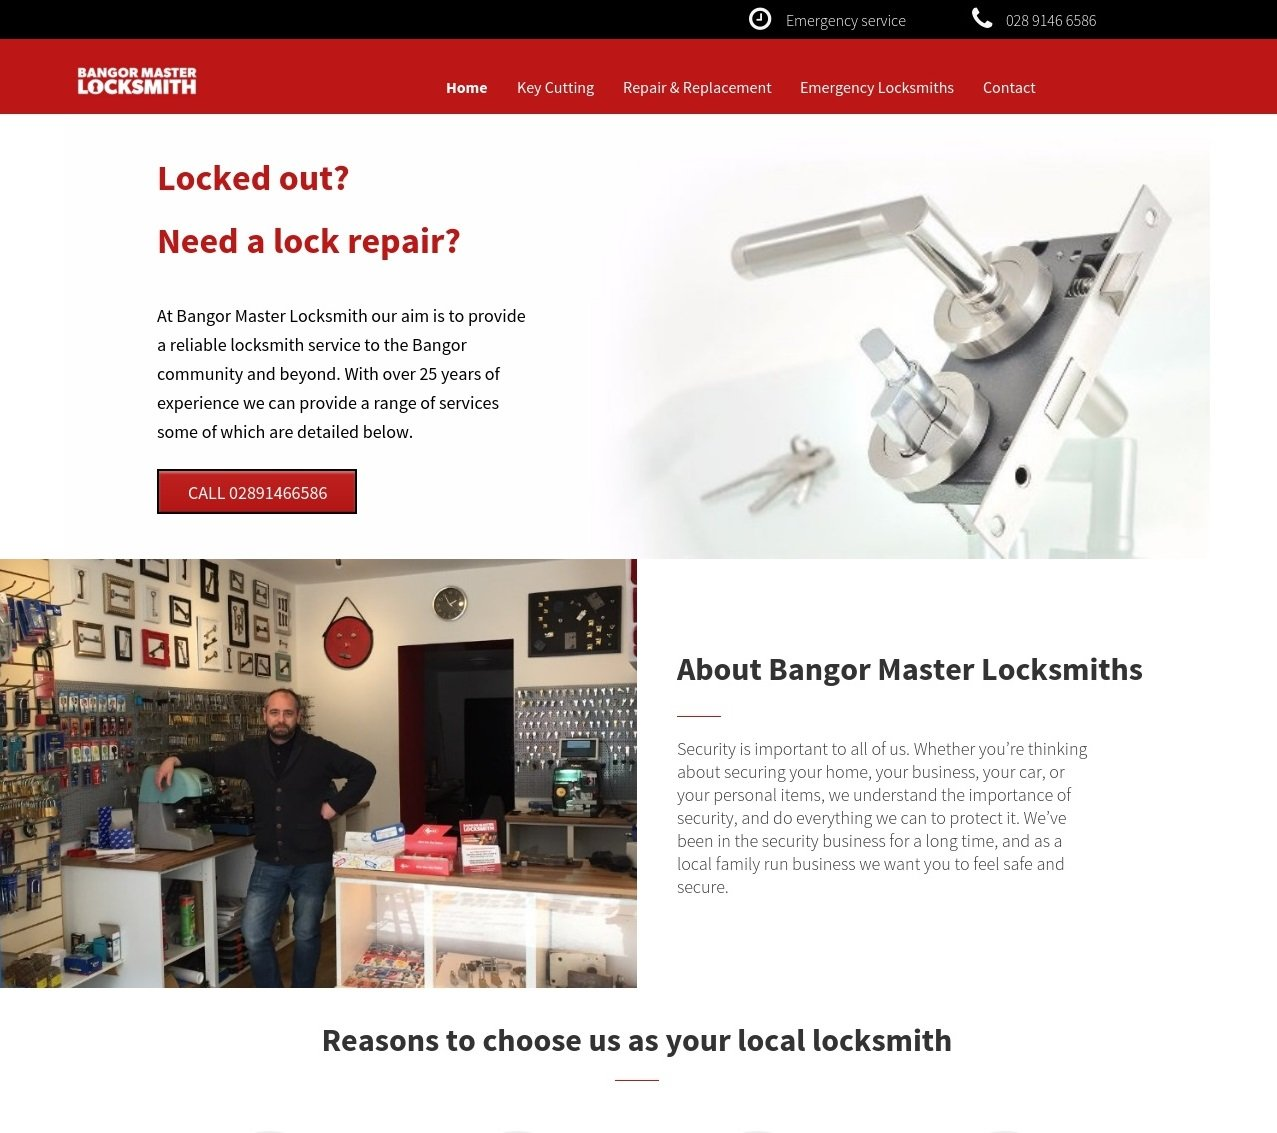 Bangor Master Locksmith website